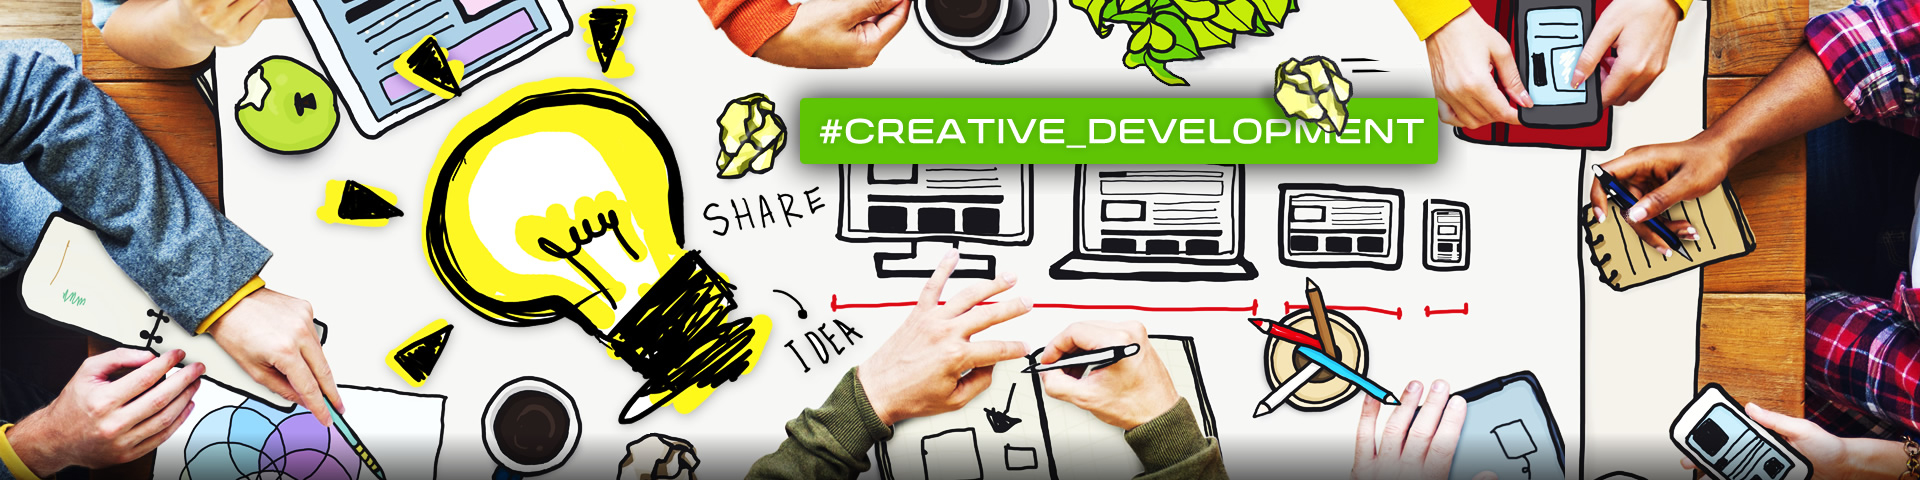 #Creative Development